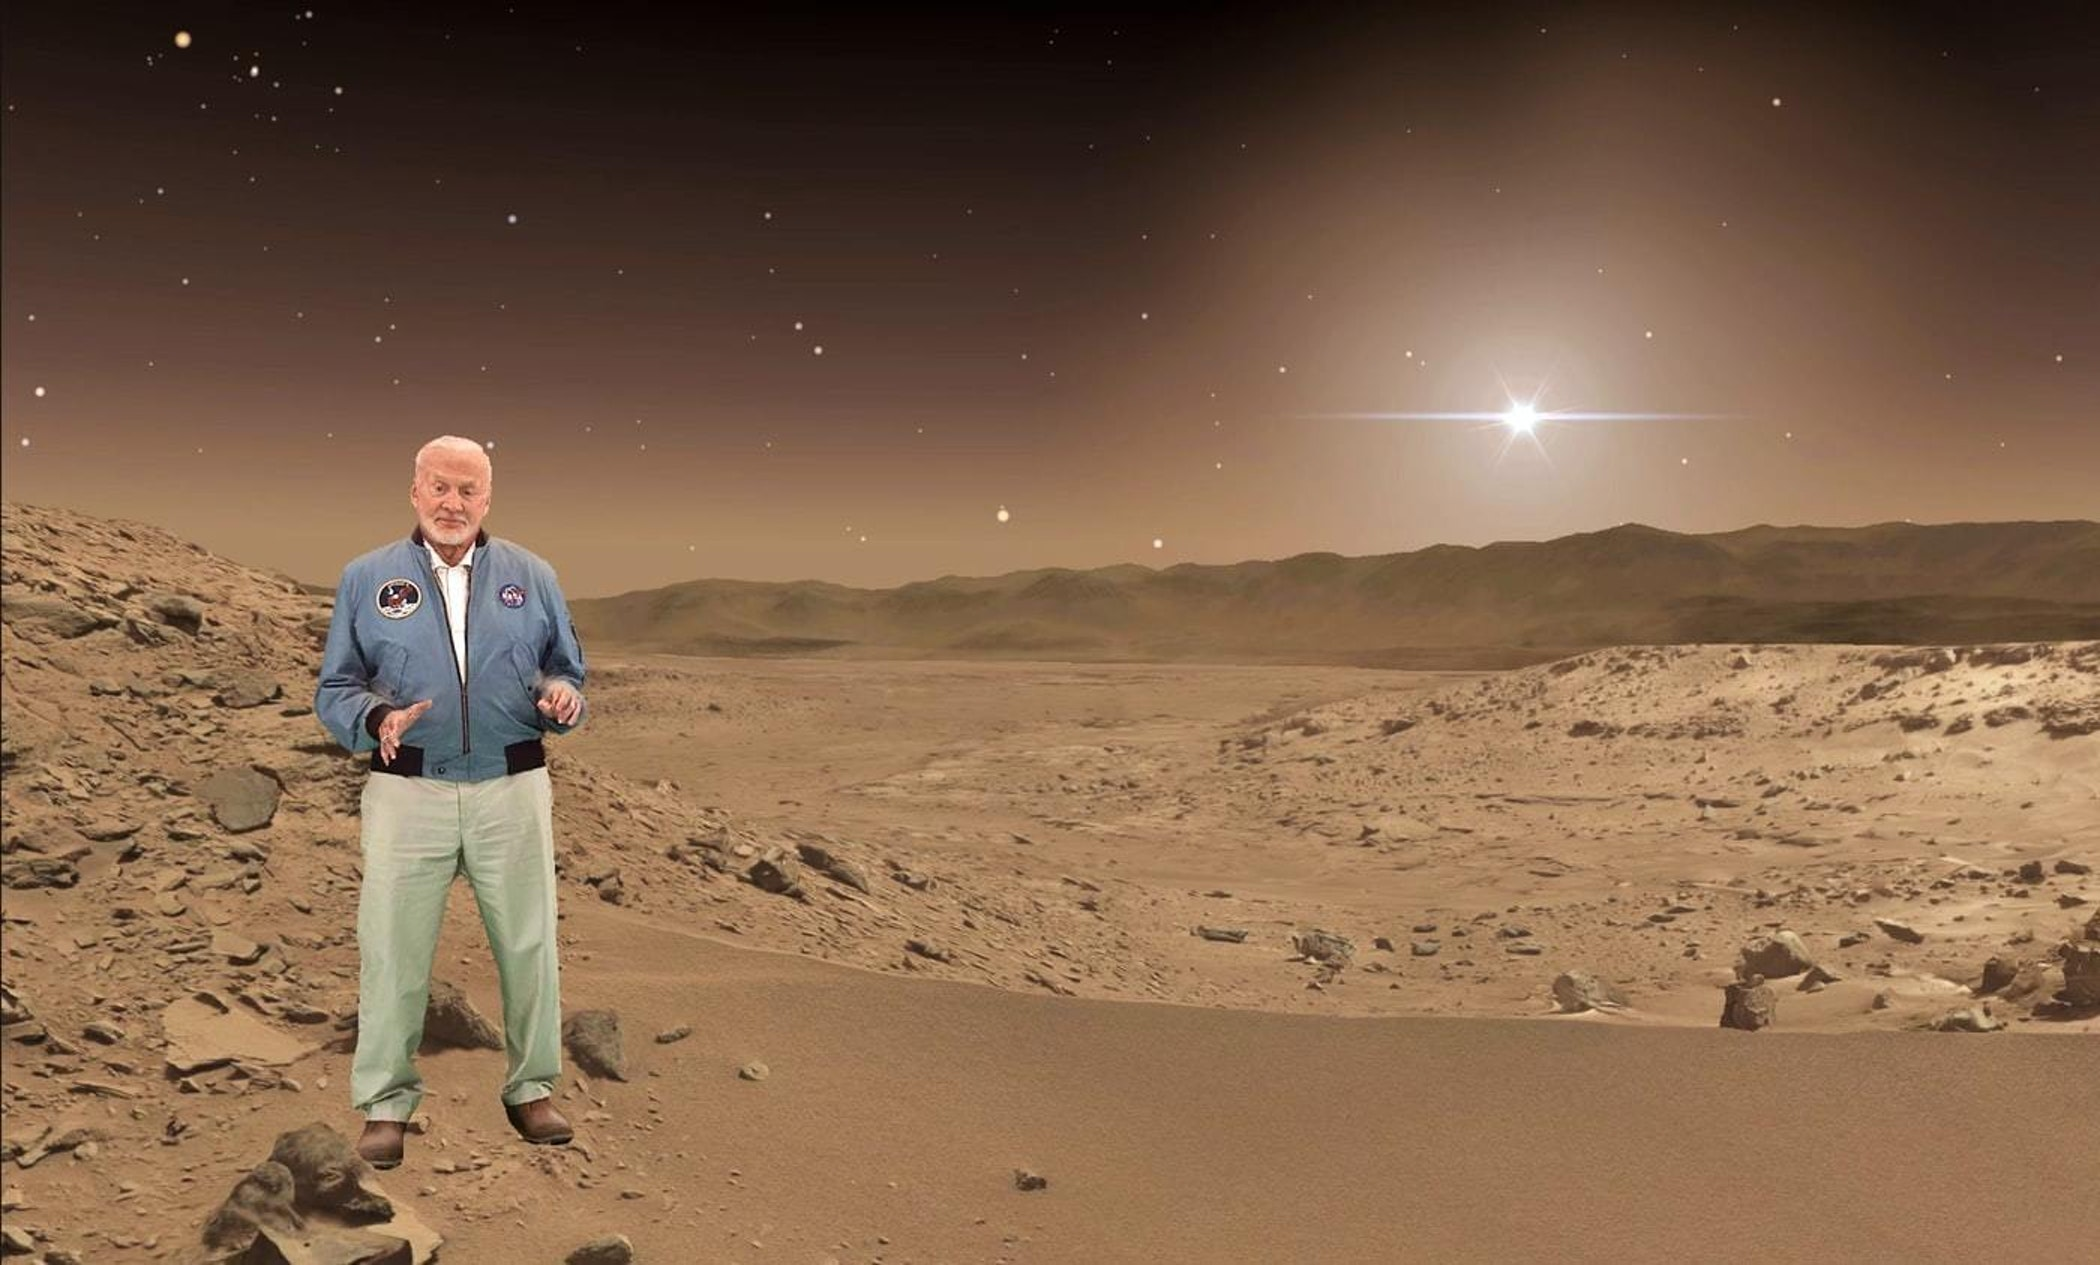 Buzz shows us our future on Mars.